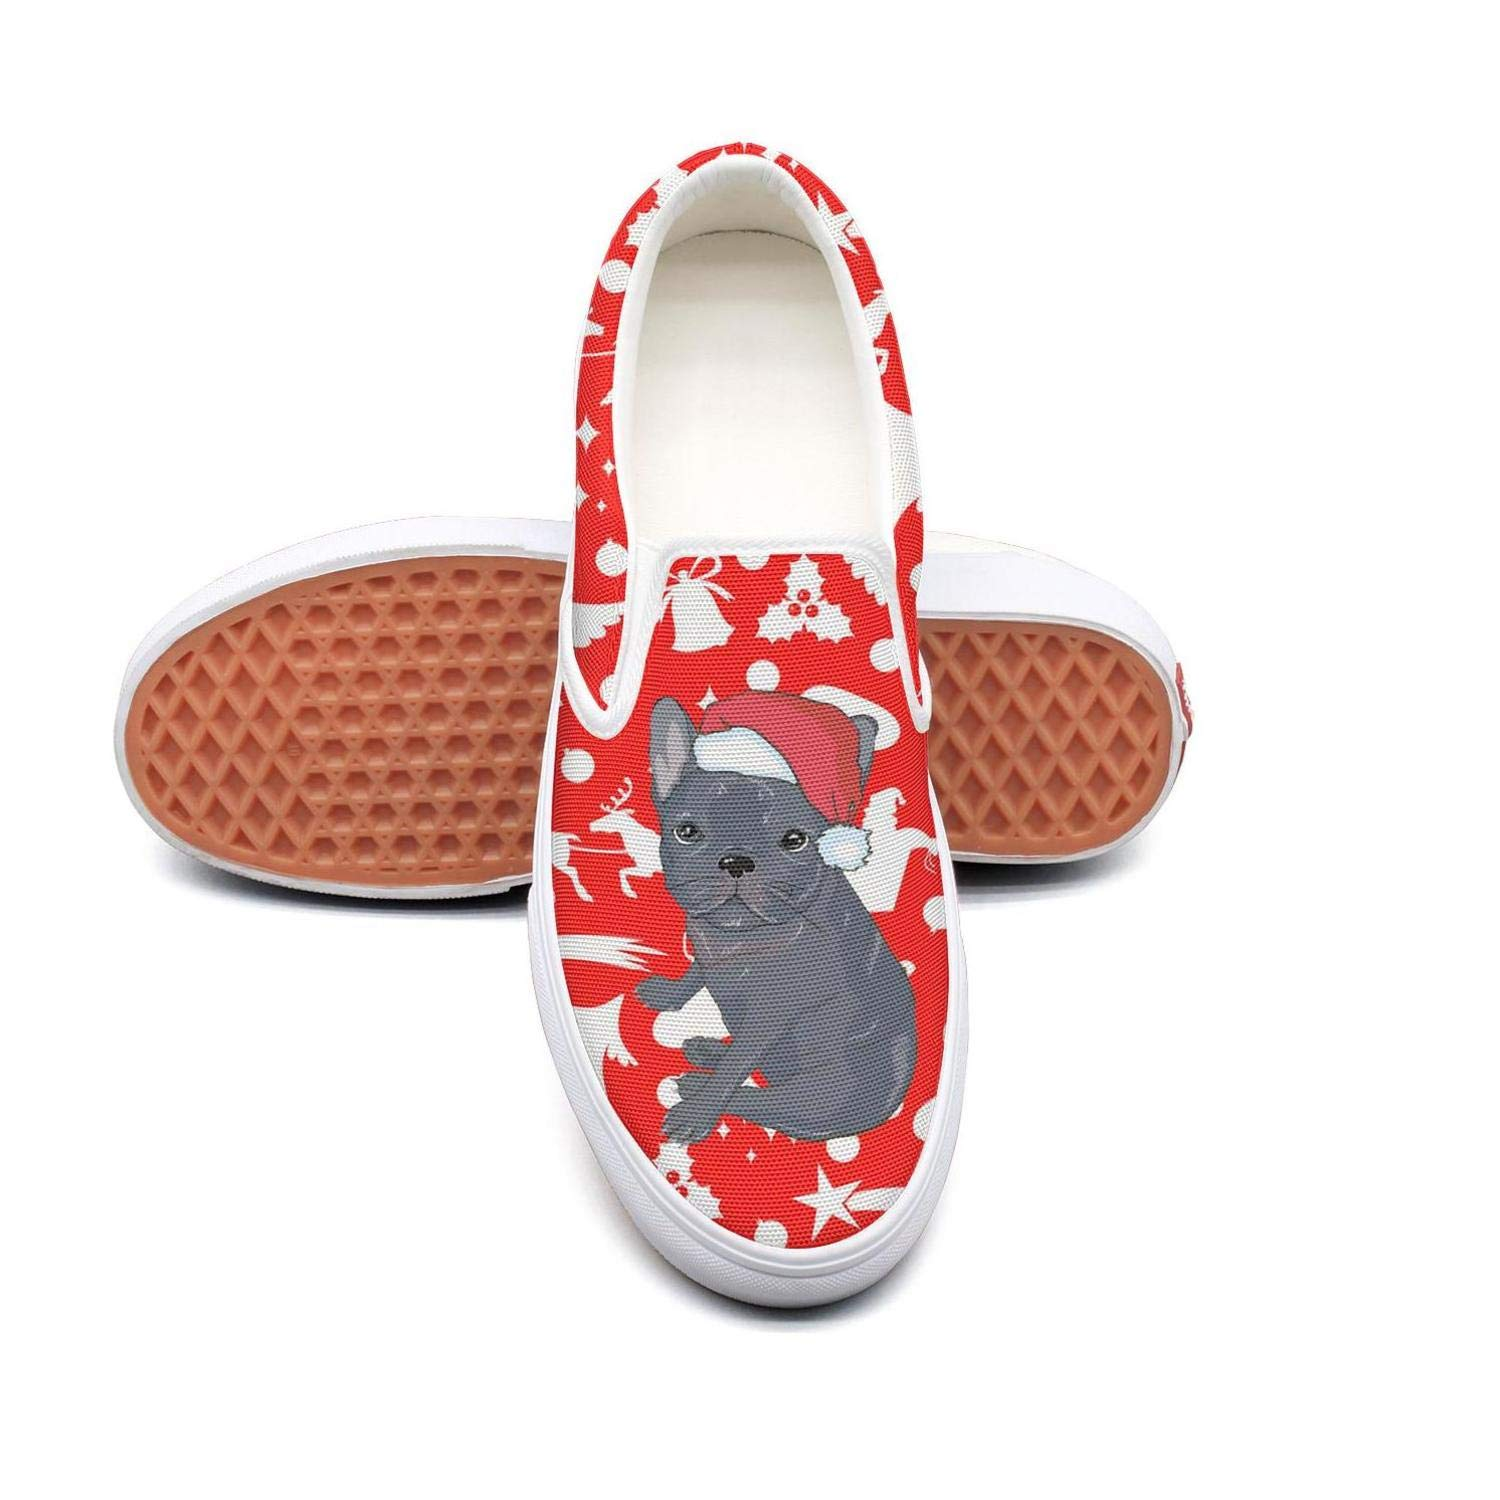 Vosda Elf Red Christmas Decoration Ball Classic Women Canvas Slip-Ons Loafer Shoes Sneaker